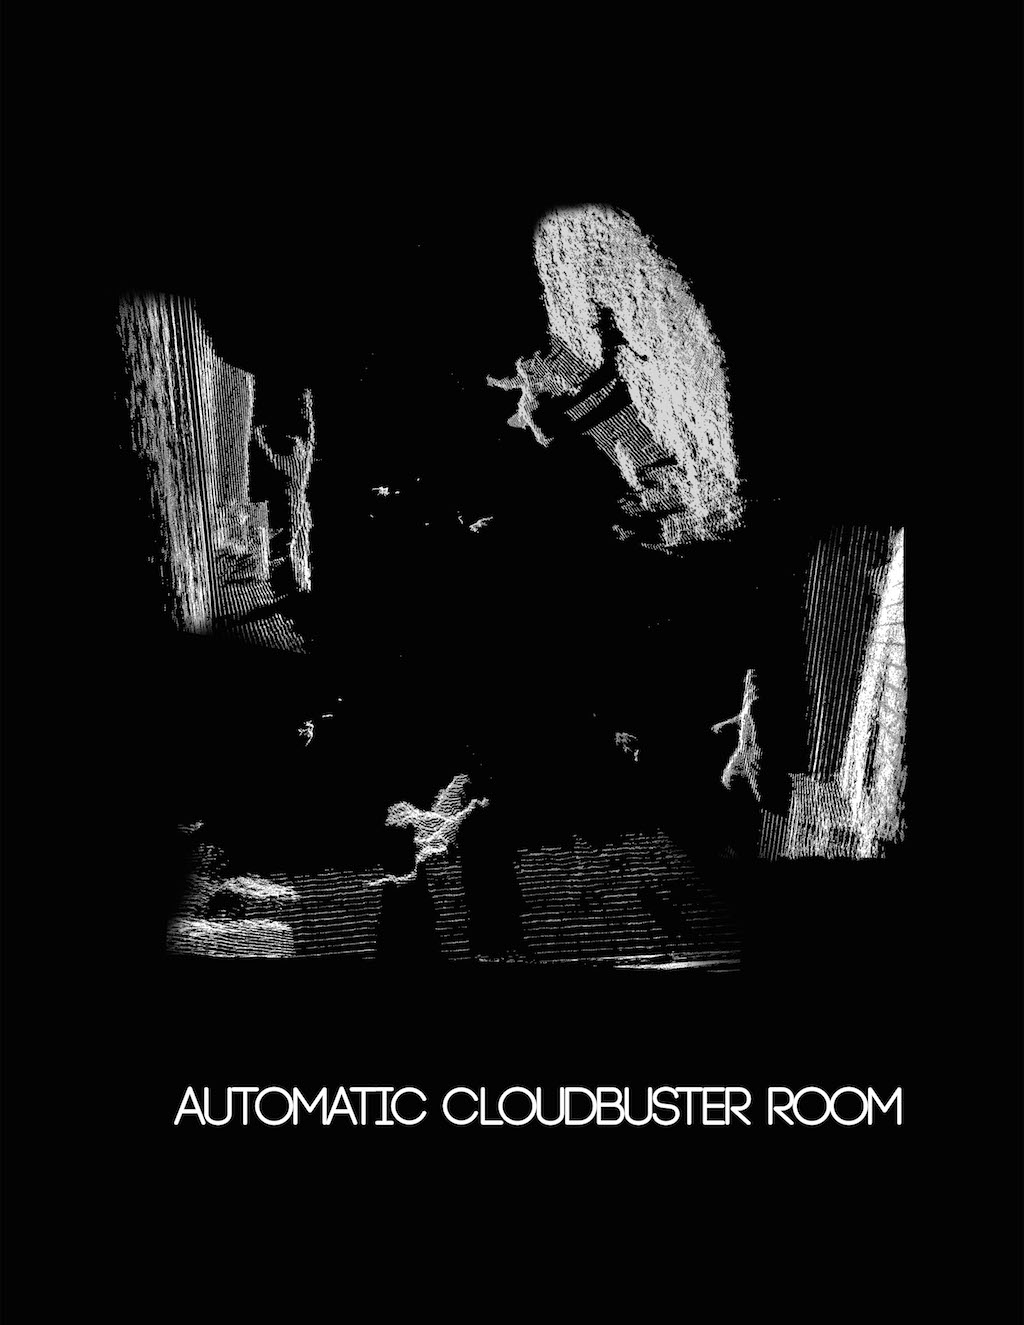 Automatic Cloudbuster Room poster